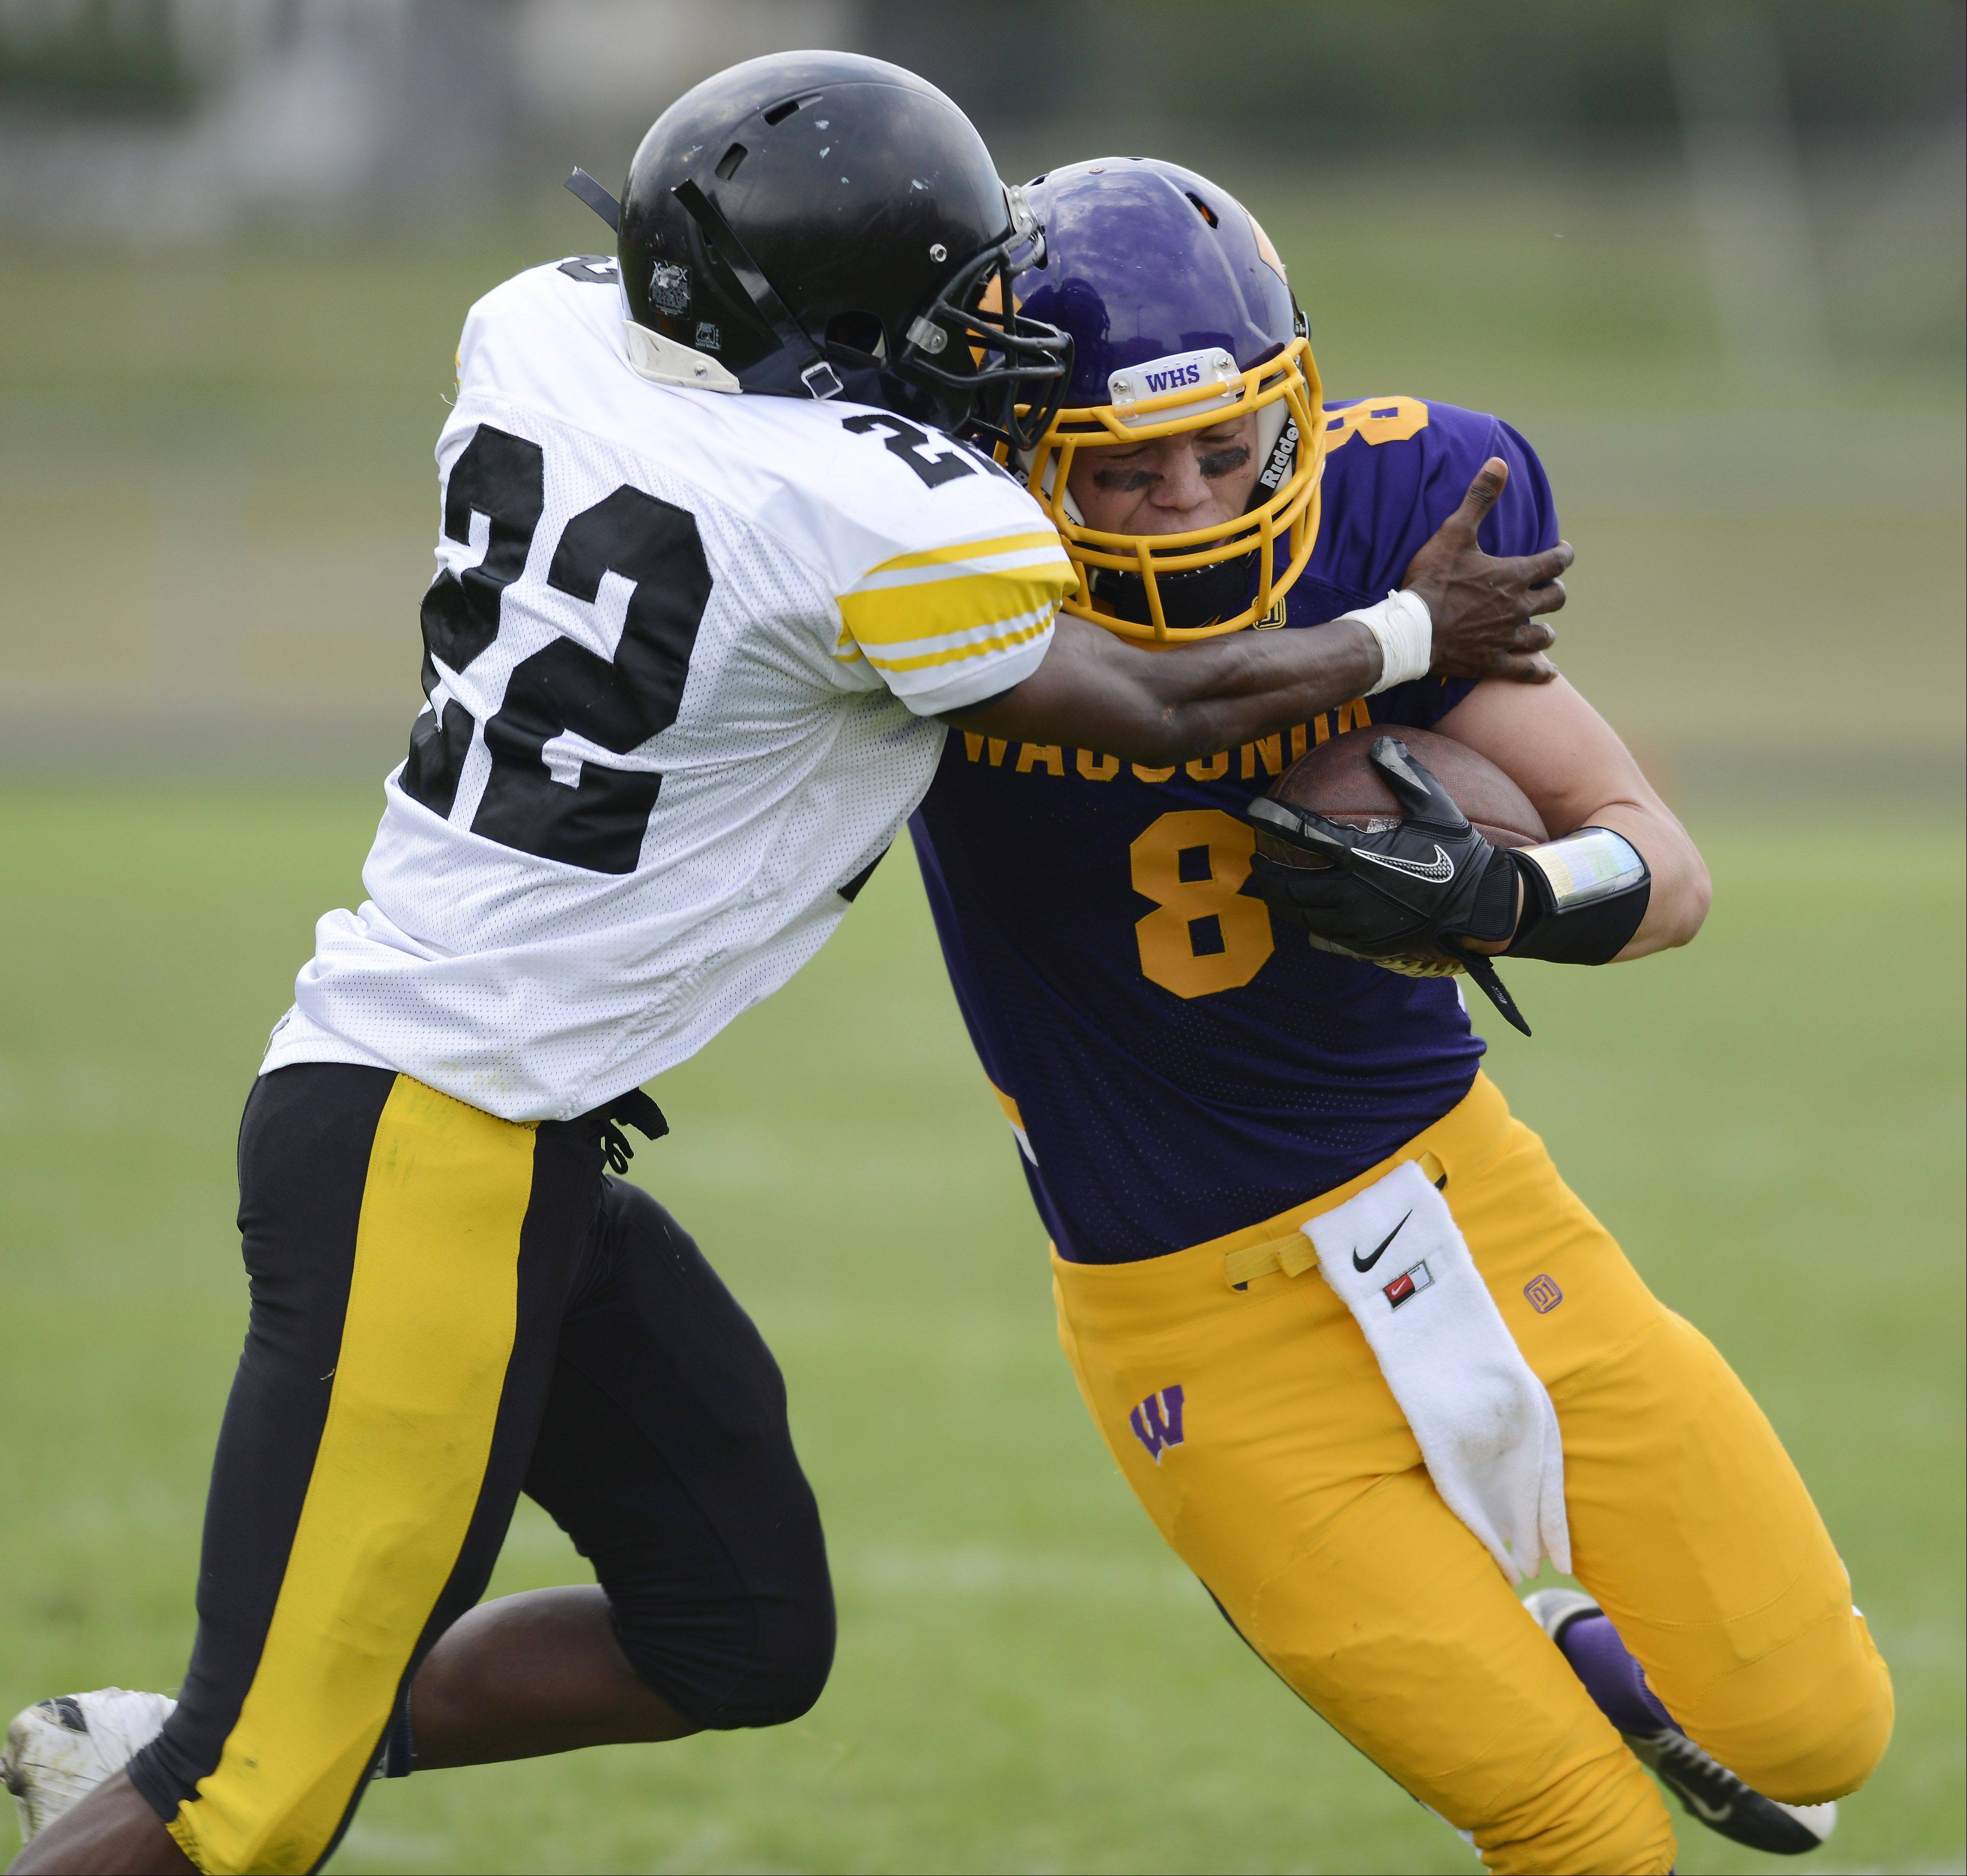 Wauconda's Alex Schwickrath, right, tries to pick up additional yardage as he is met by Orr's Lamont Stanton during Saturday's game.